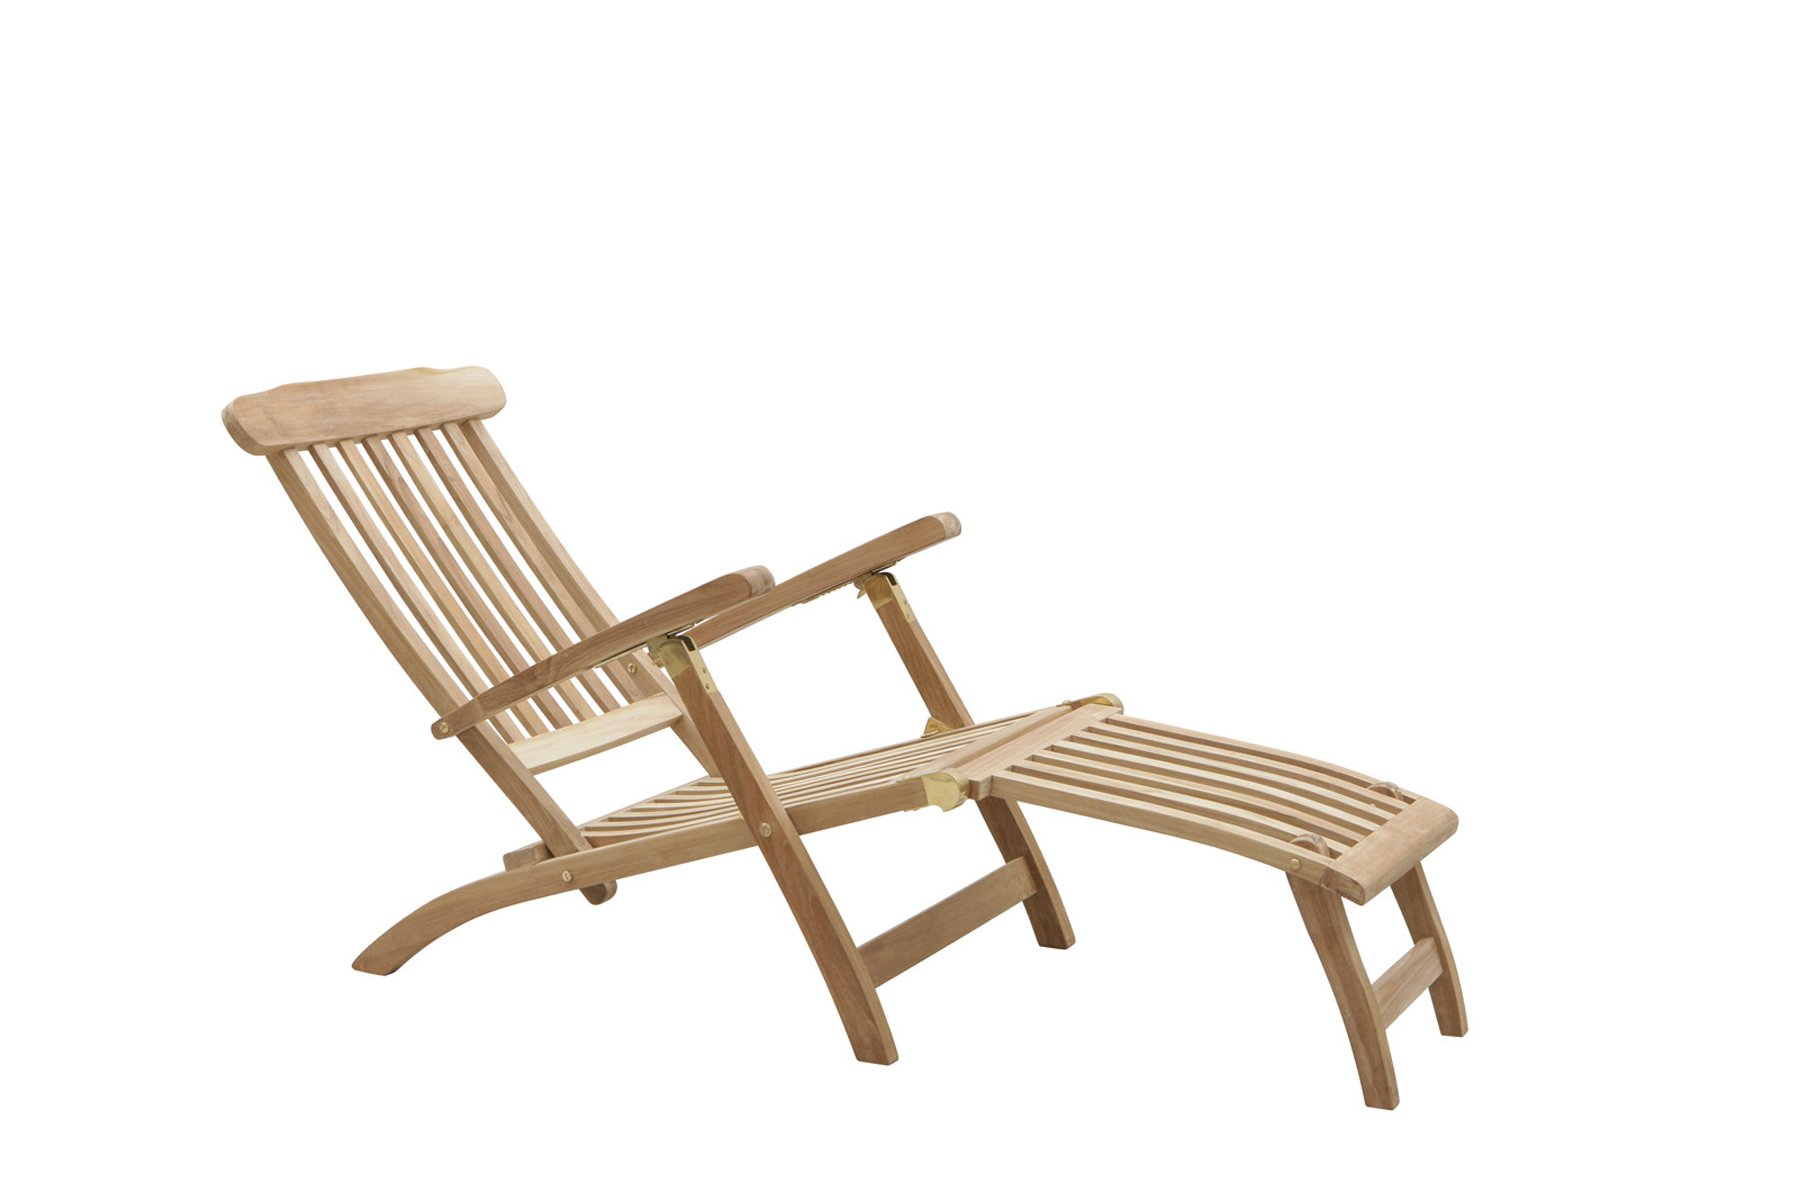 Adjustable deckchair with leg rest Ocean u2013 Brass u2013 Moon  sc 1 st  Il Giardino di Legno & Adjustable deckchair with leg rest Ocean - Brass - Moon - Il ...